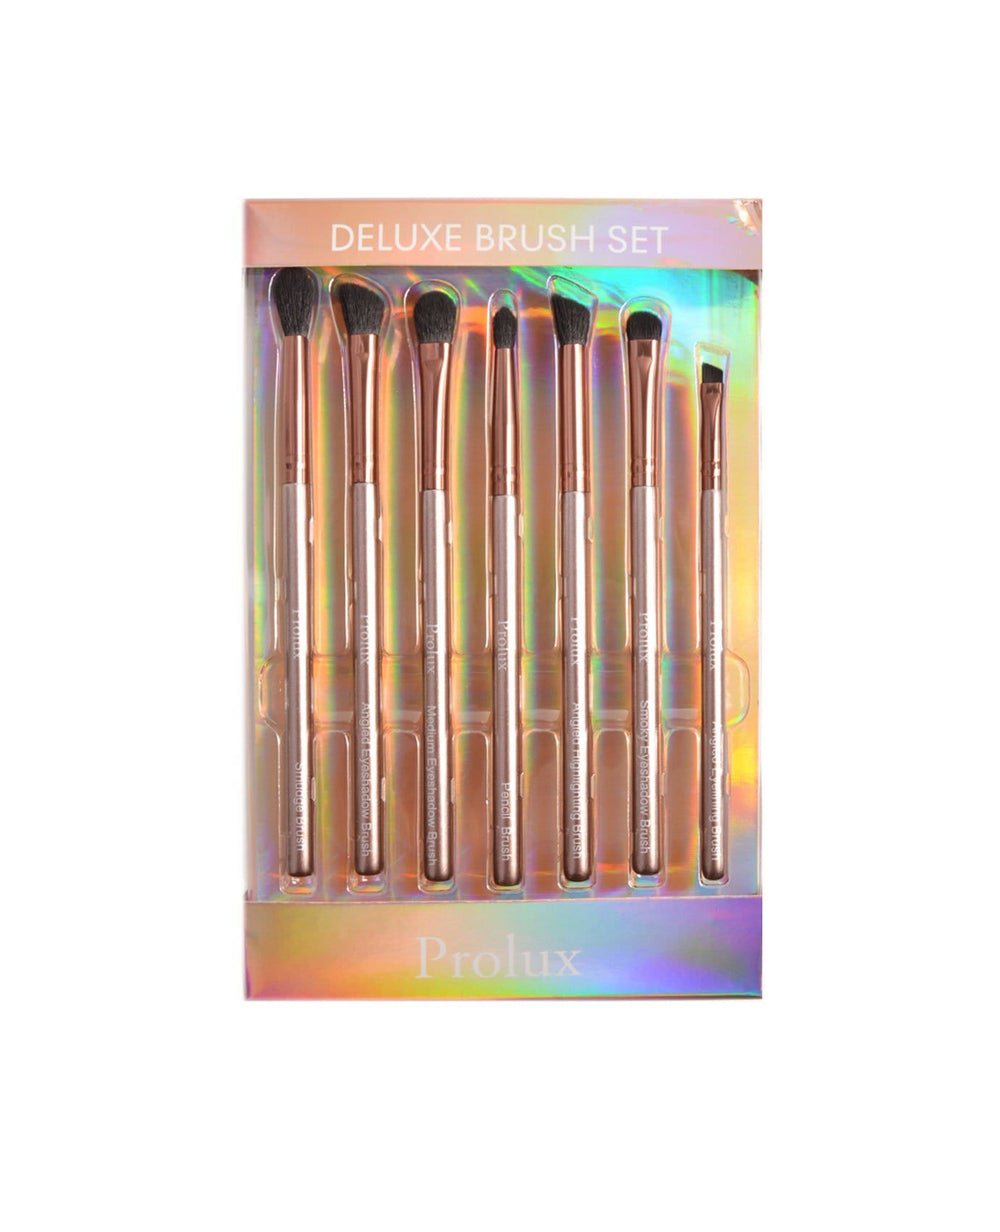 Prolux Deluxe Brush Set